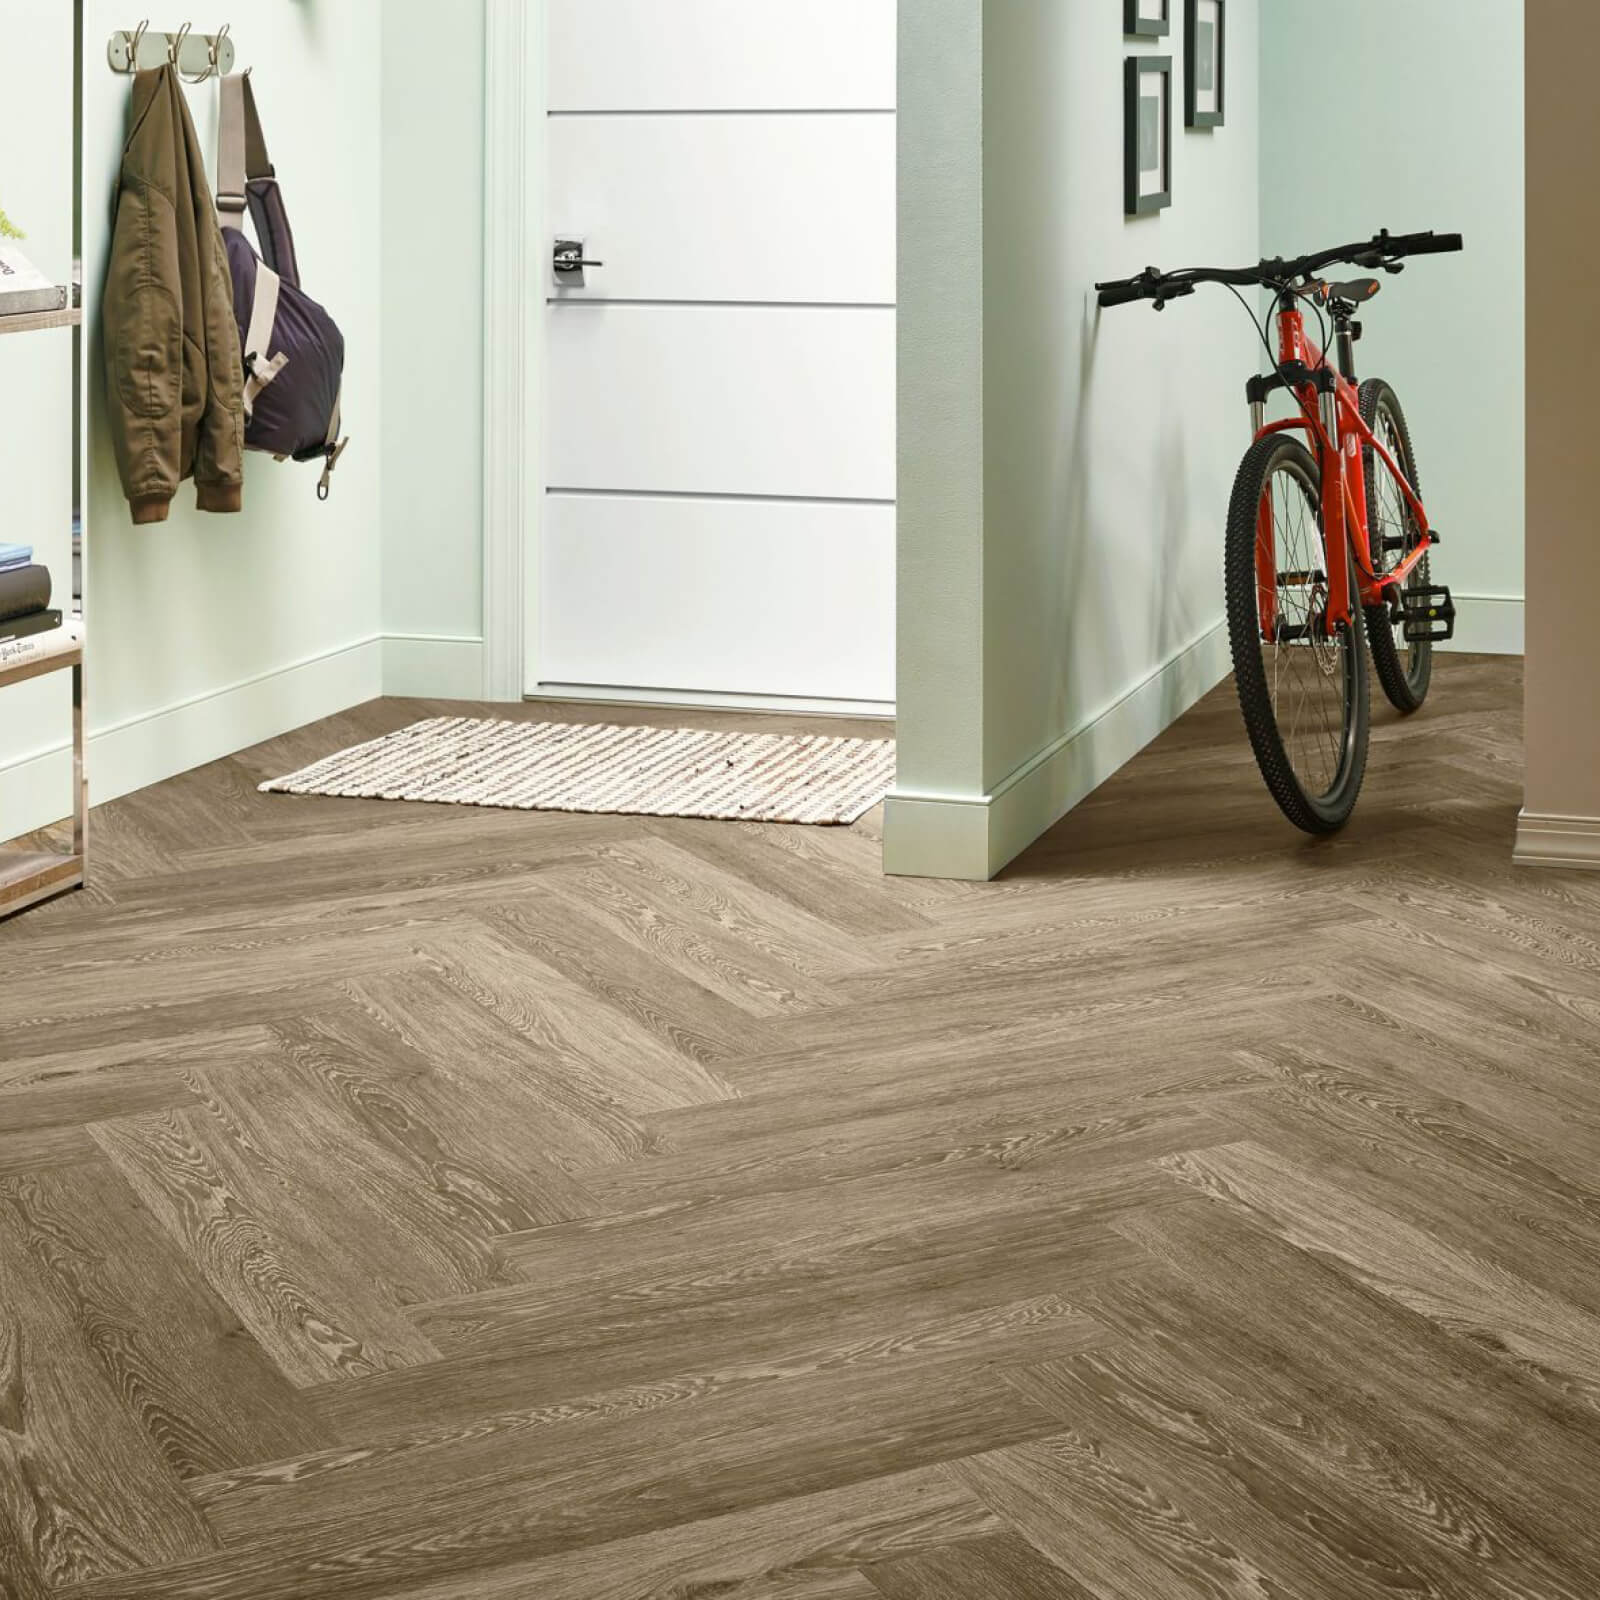 Bicycle on flooring | Mill Direct Floor Coverings